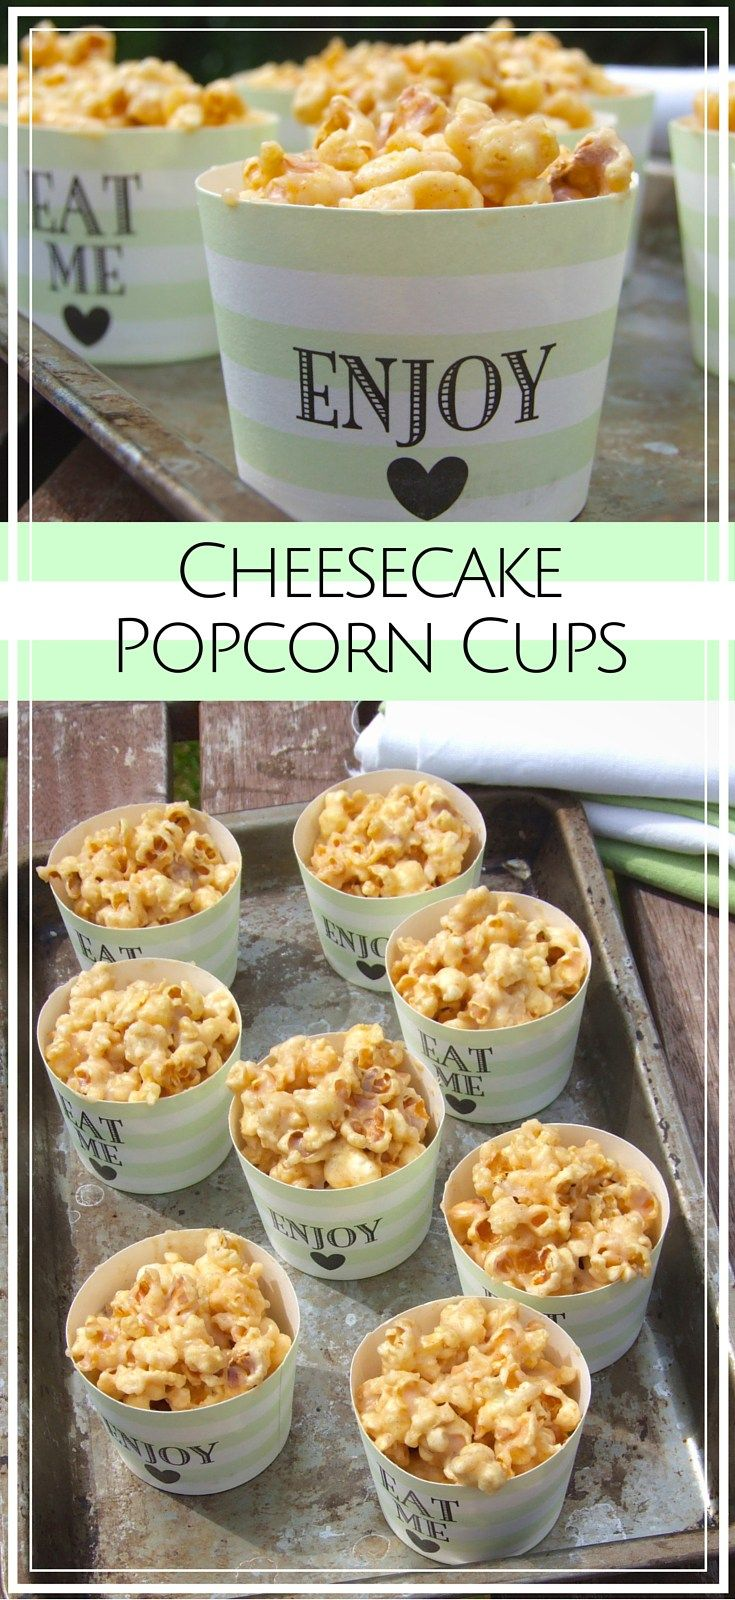 Sweet, creamy cheesecake - in popcorn form! These little cups of deliciousness are a perfect snack for both kids and adults.